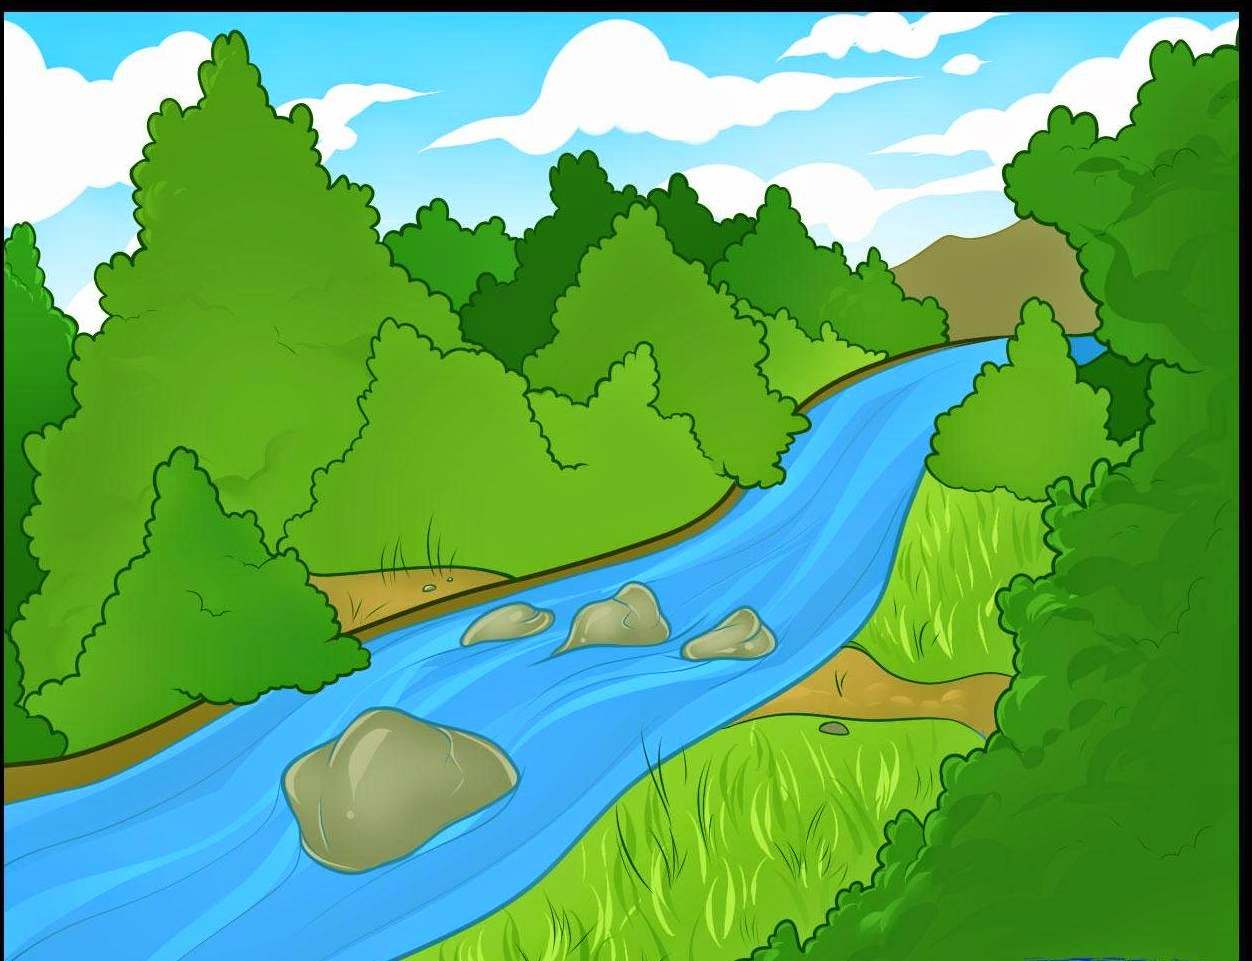 River clipart river animal Images clipart River River Cliparting